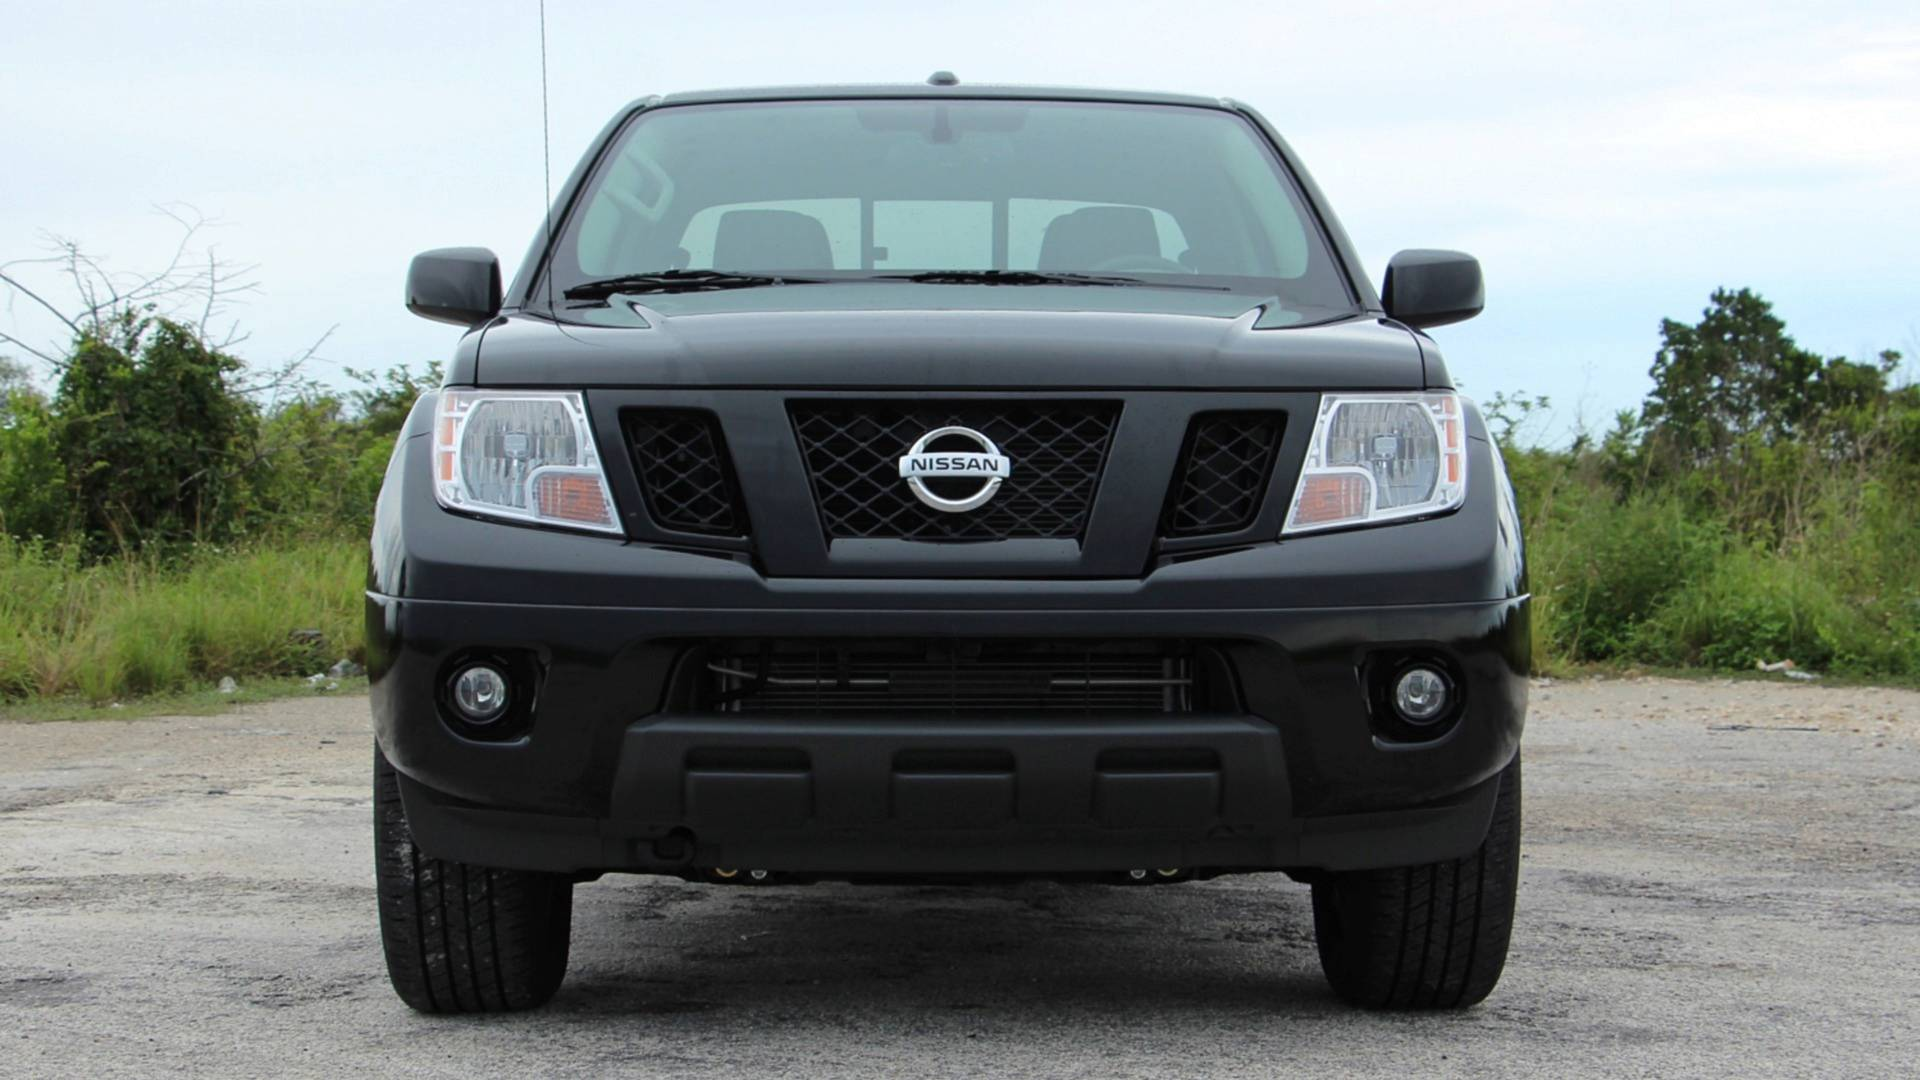 2018 nissan frontier midnight edition review 3144122 2018 nissan frontier midnight edition